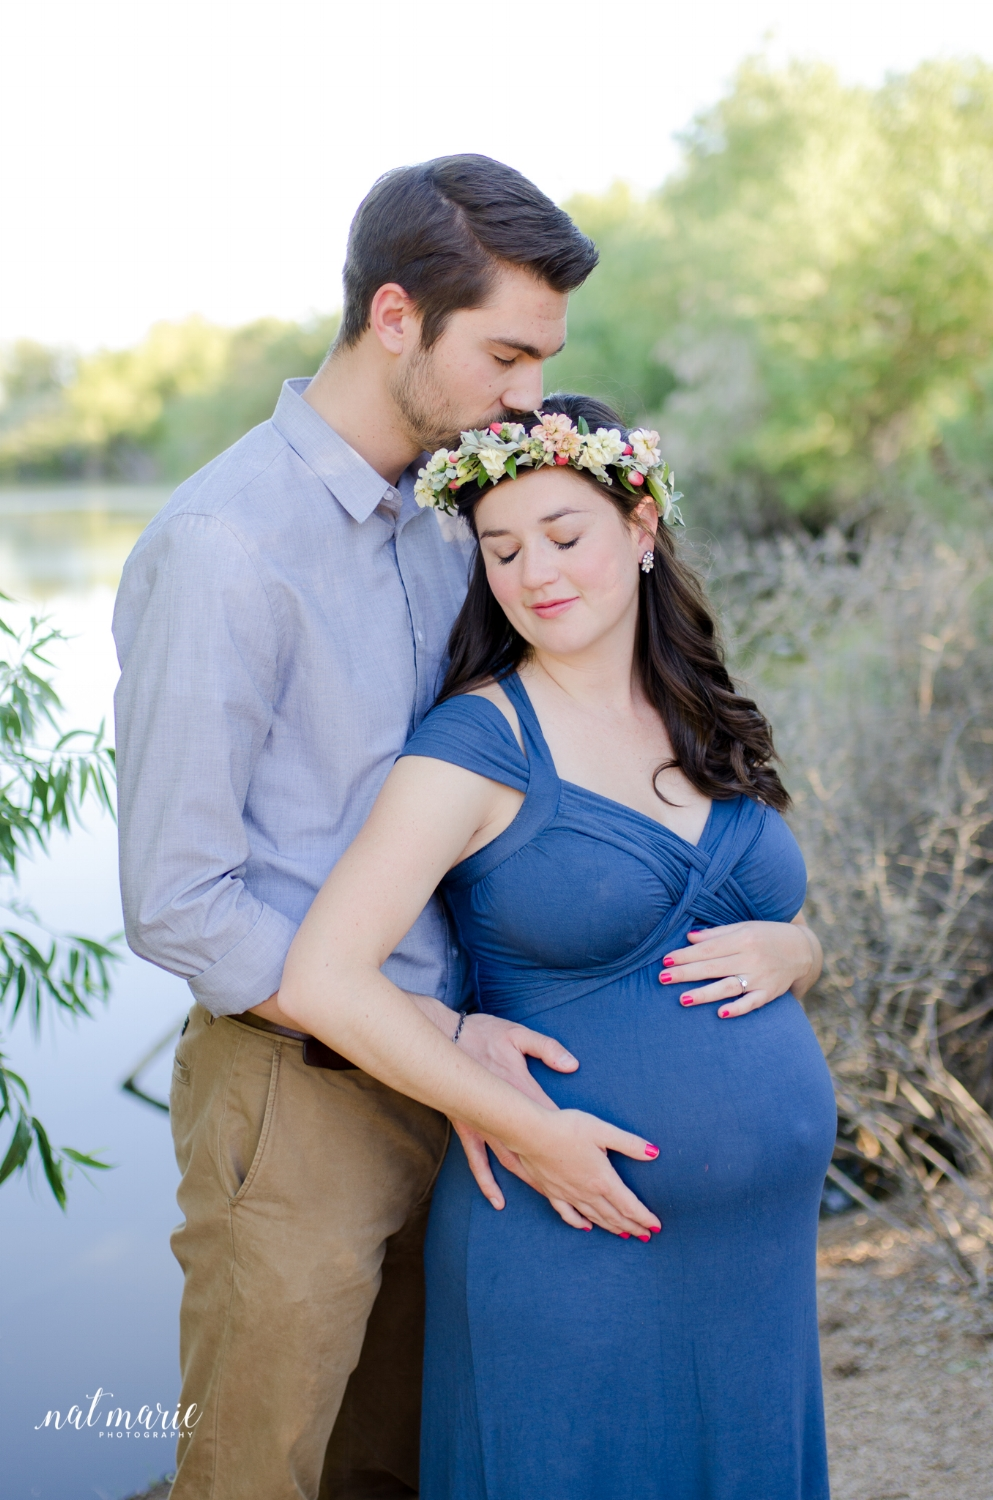 Gilbert, AZ Maternity Session - Light & Airy Photographer